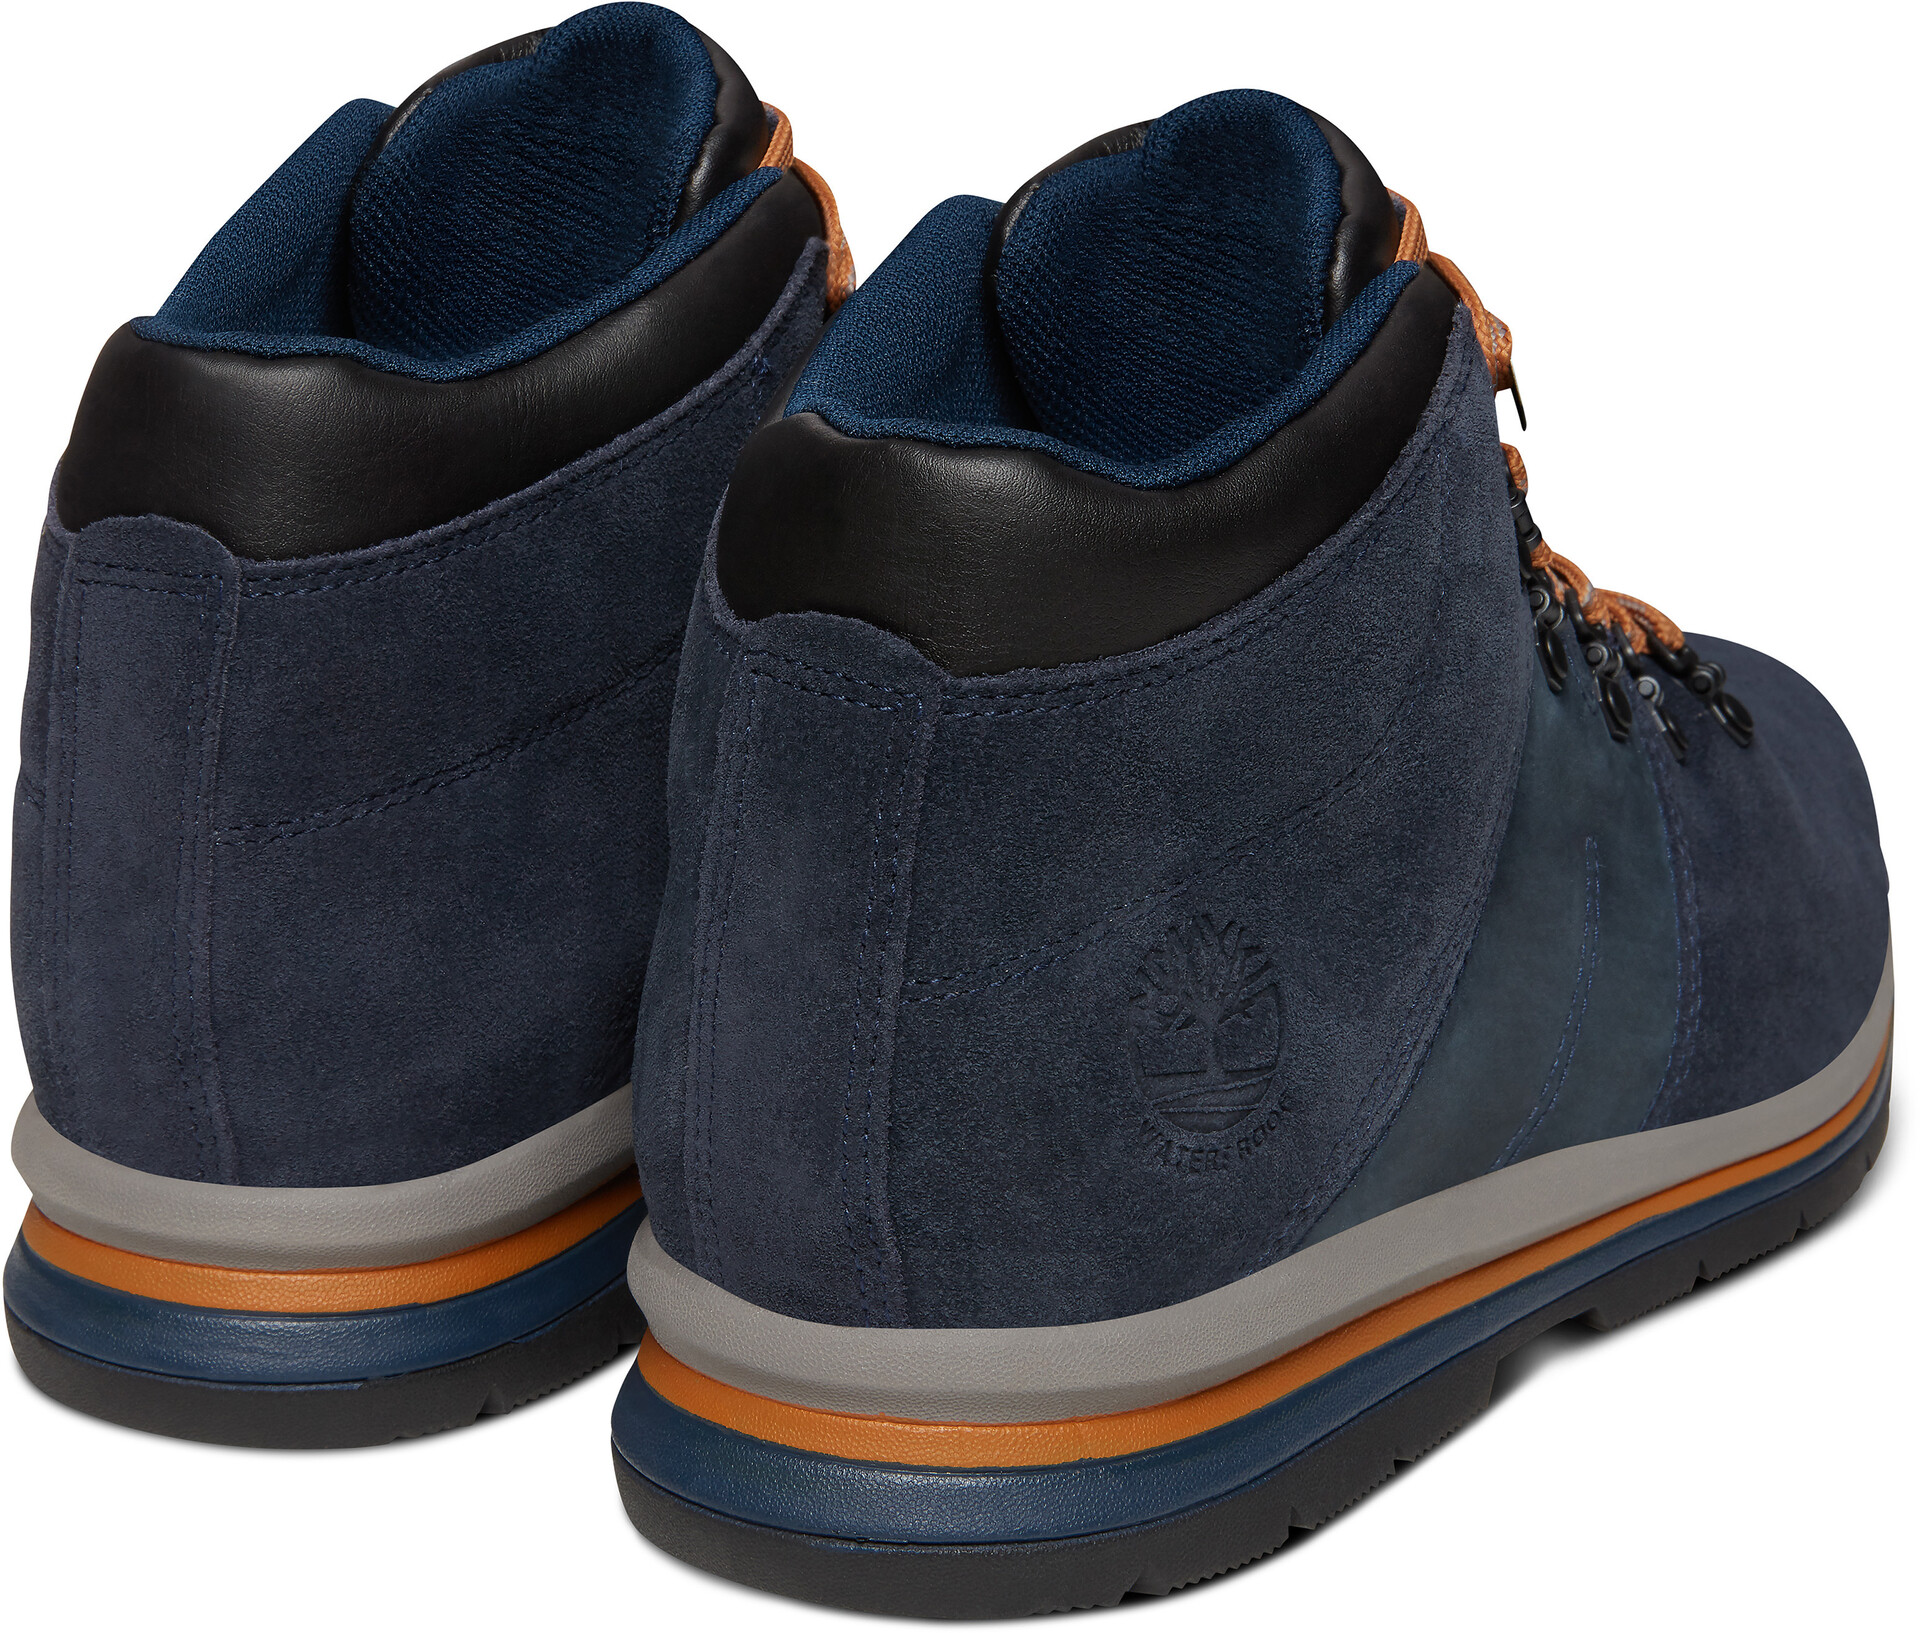 Timberland Wp Suede Gt Navy Rally Mid Shoes Herren Leather mvyn0OPN8w